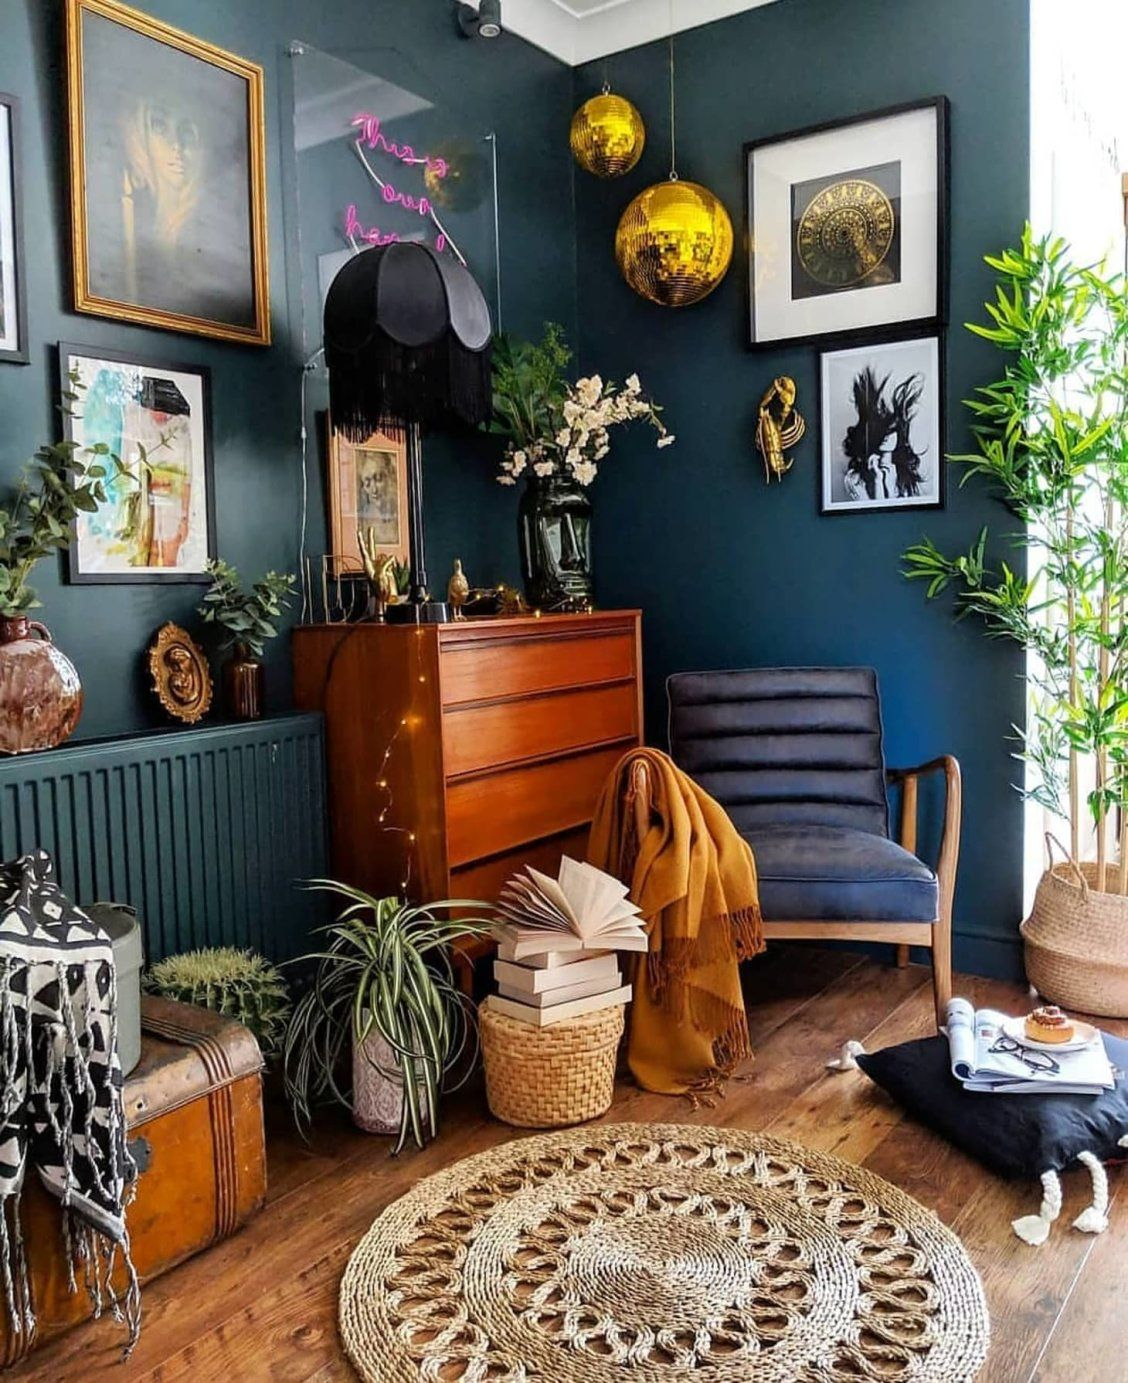 Find Tons Of Decor Inspiration In This Quirky And Colorful Uk Home Eclectic Home Home Decor Quirky Home Decor Living room ideas quirky